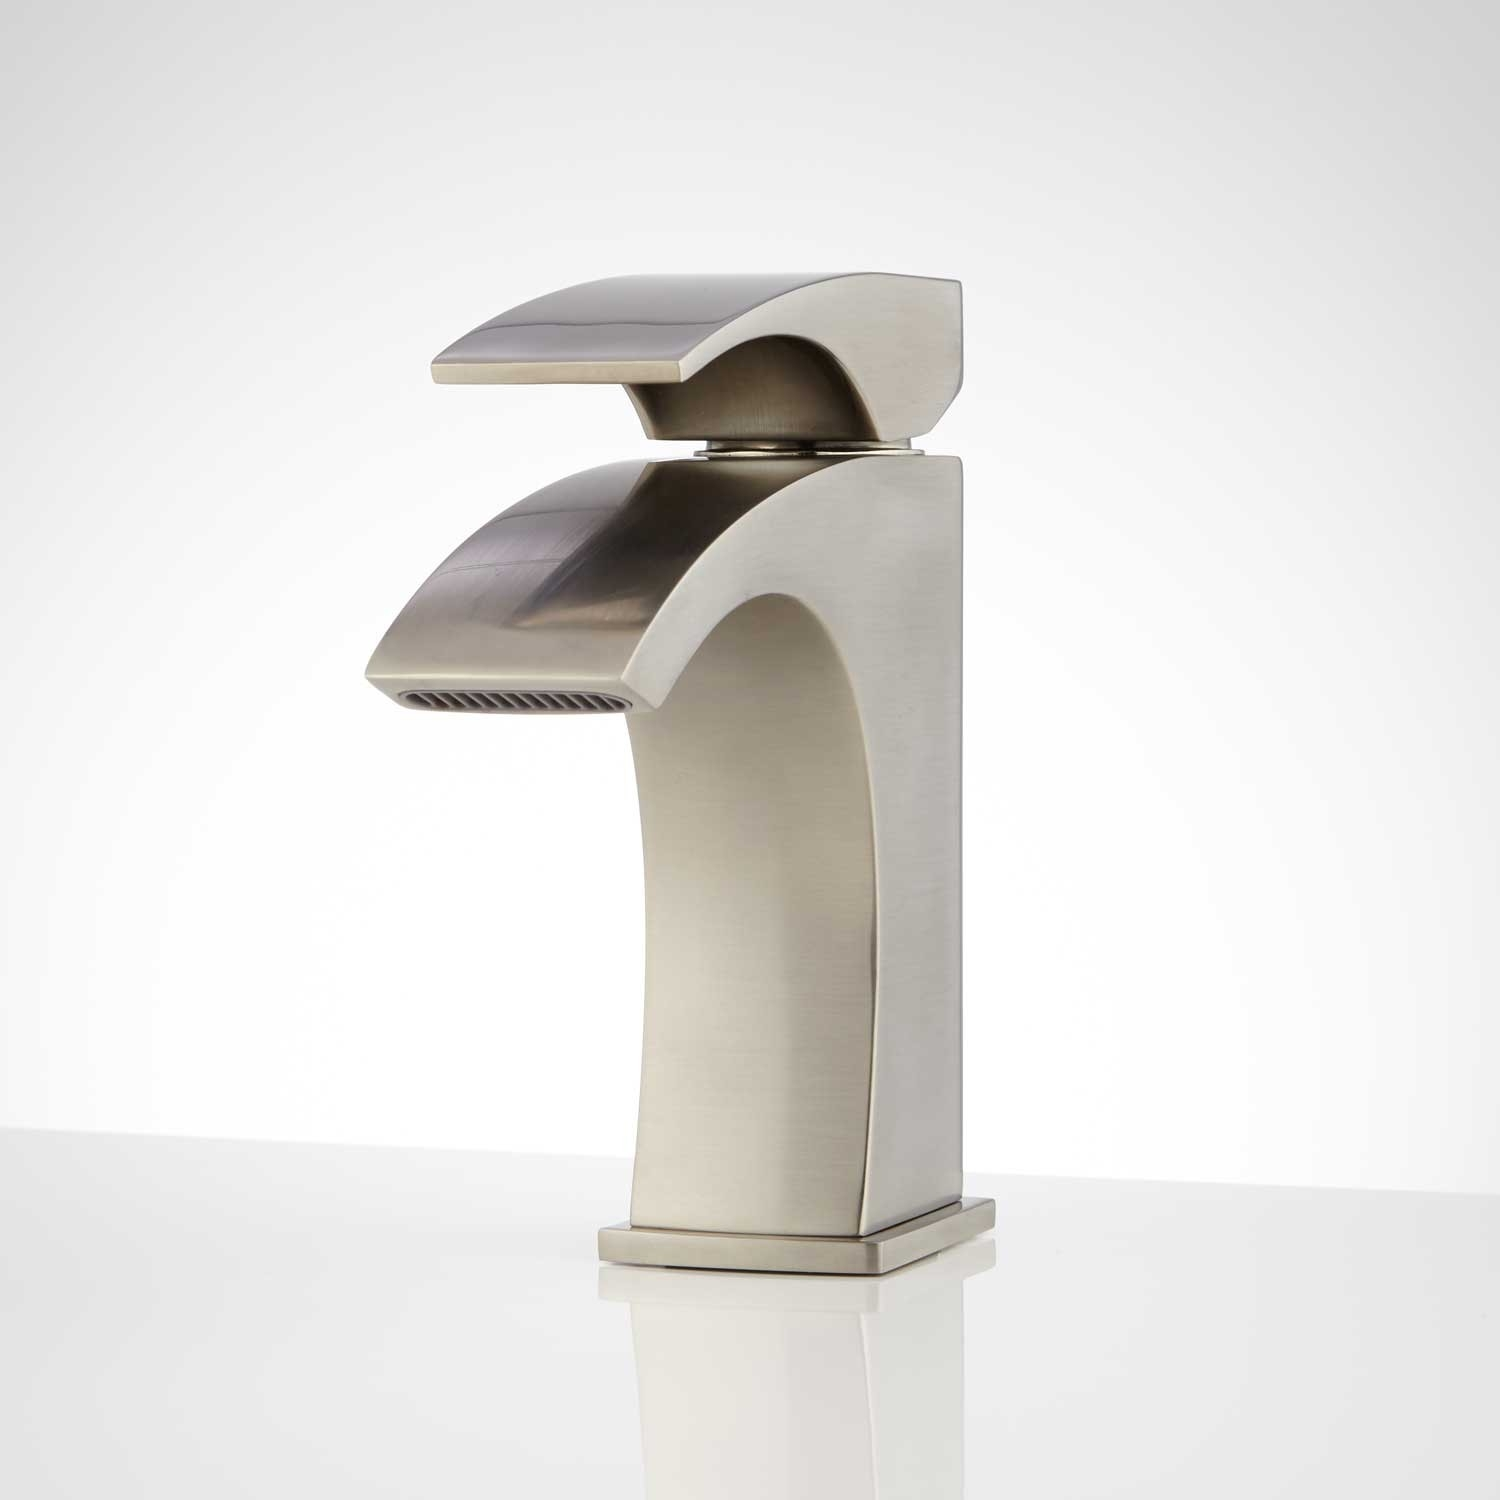 Ideas, montevallo single hole bathroom faucet with pop up drain bathroom pertaining to dimensions 1500 x 1500  .